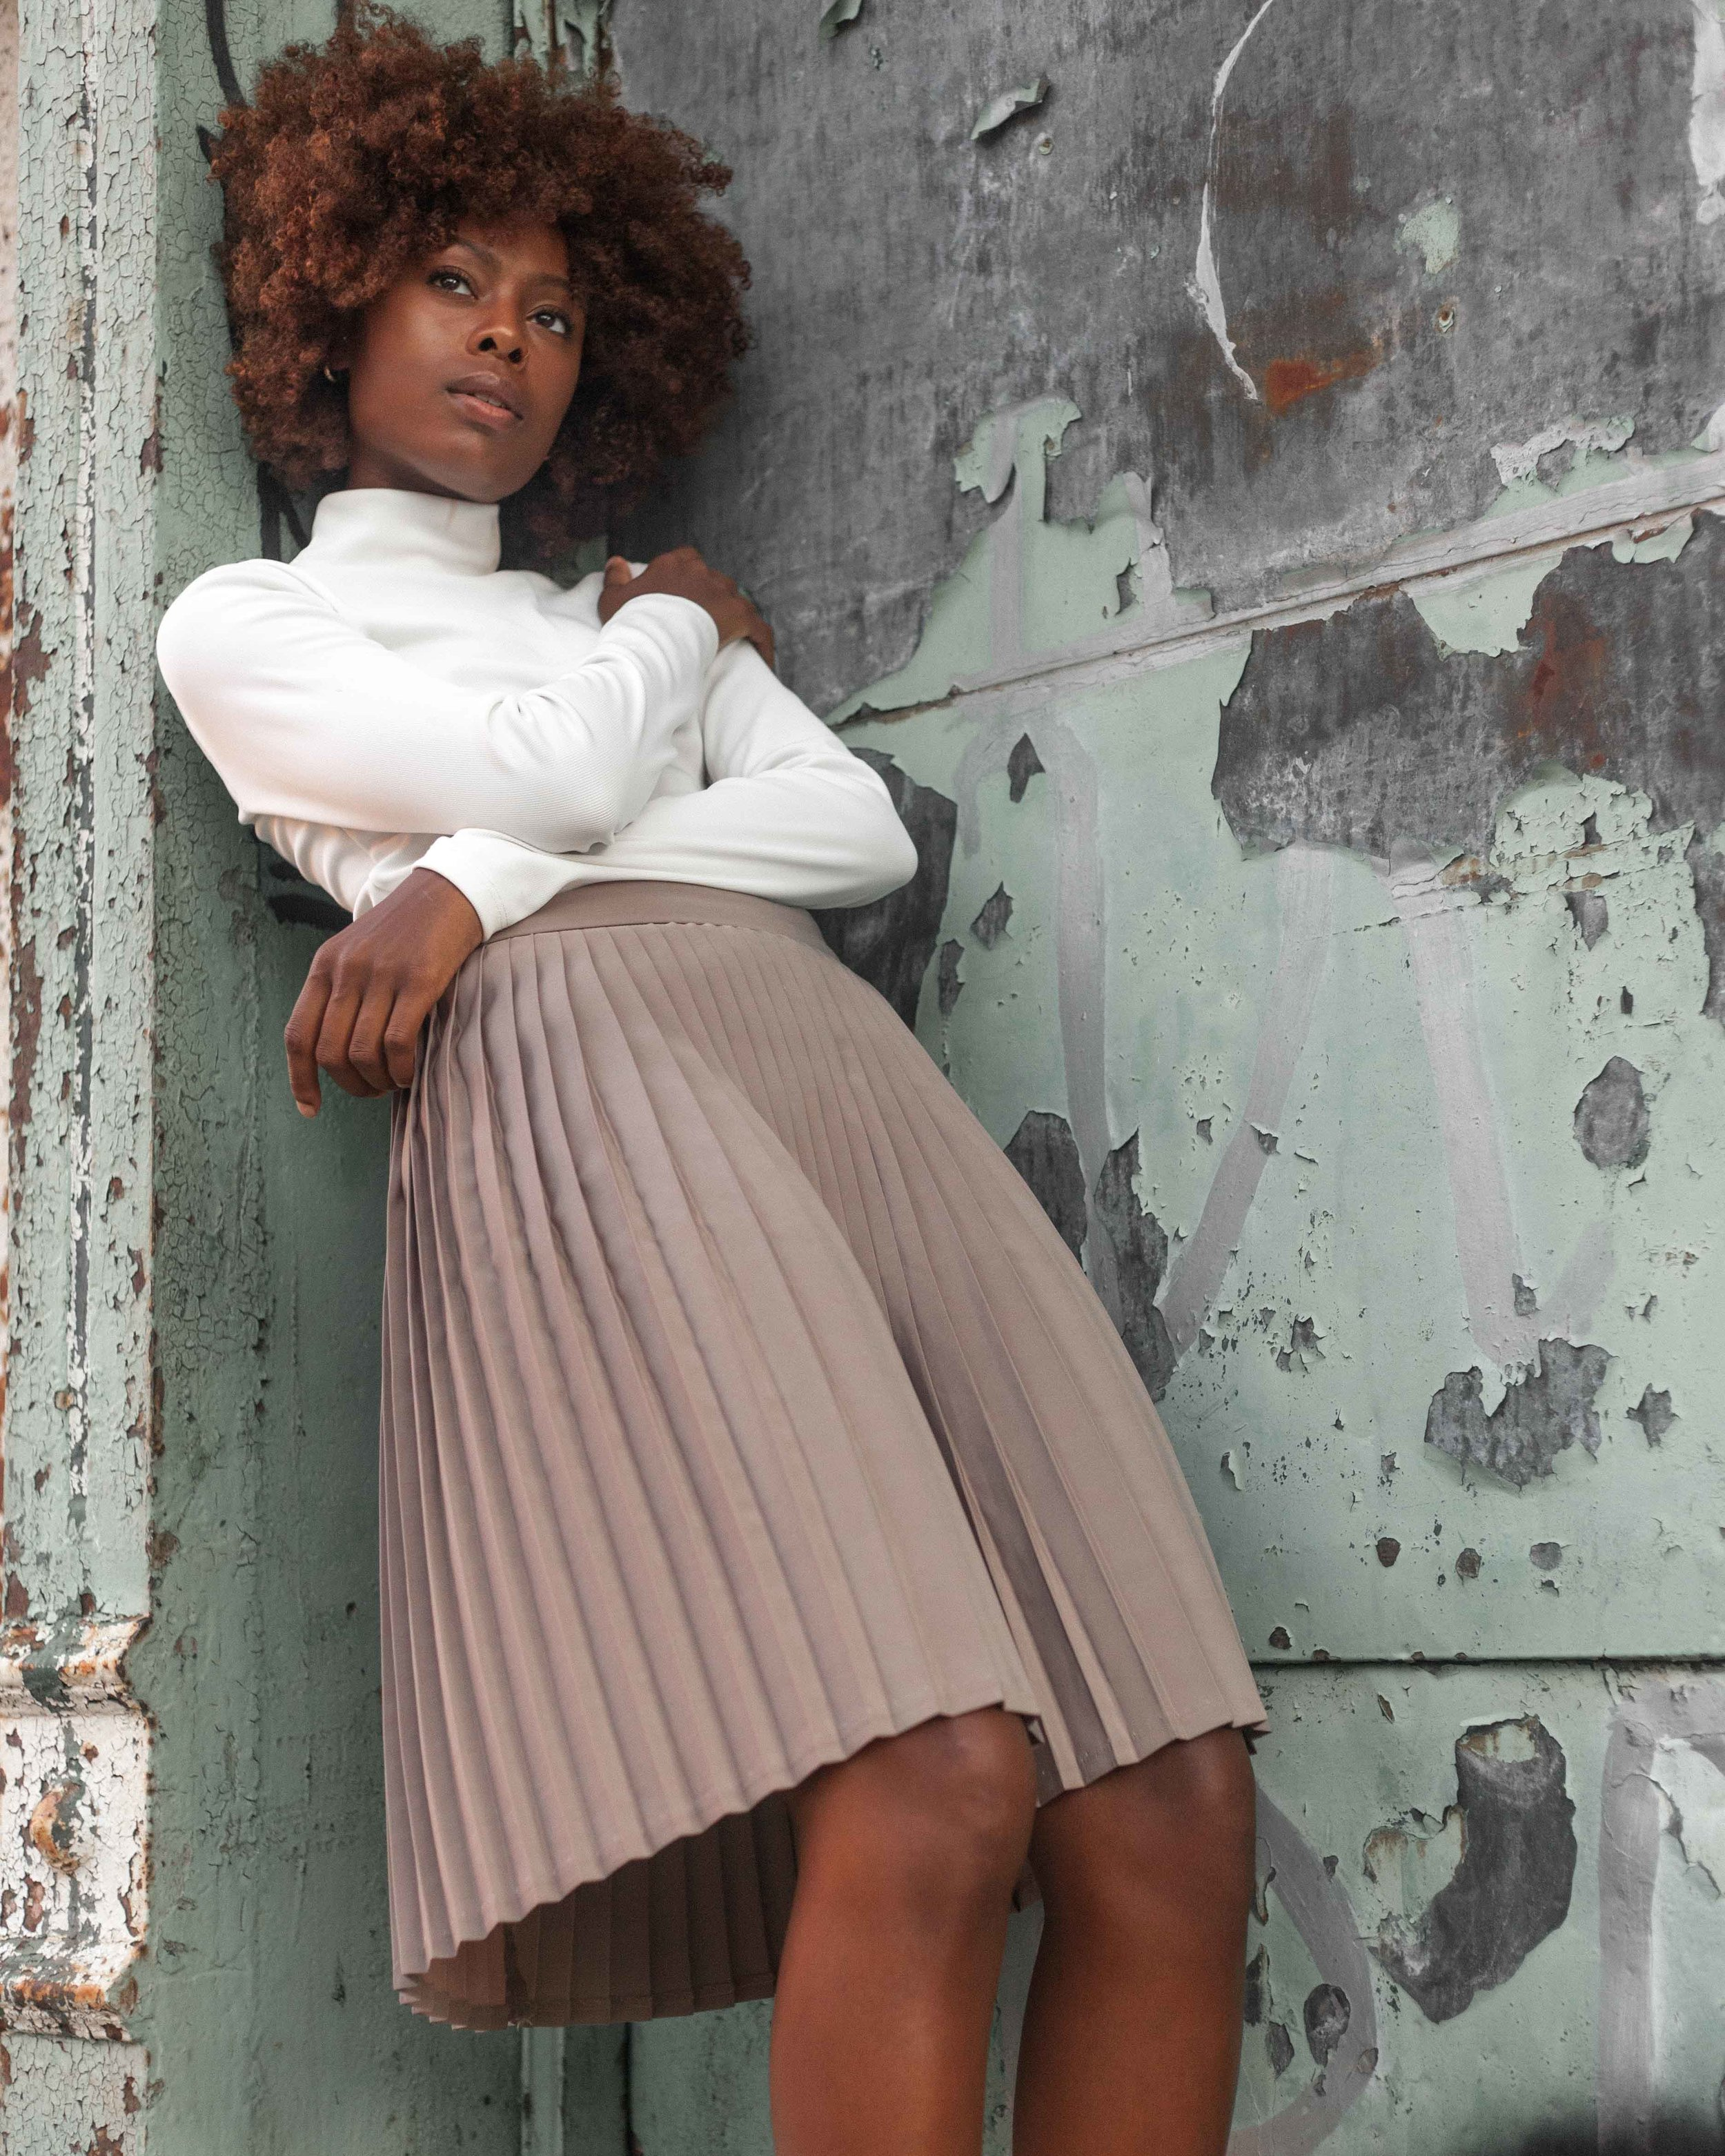 Model standing with wall Digital Portrait Photography captured by Jarrod Anderson